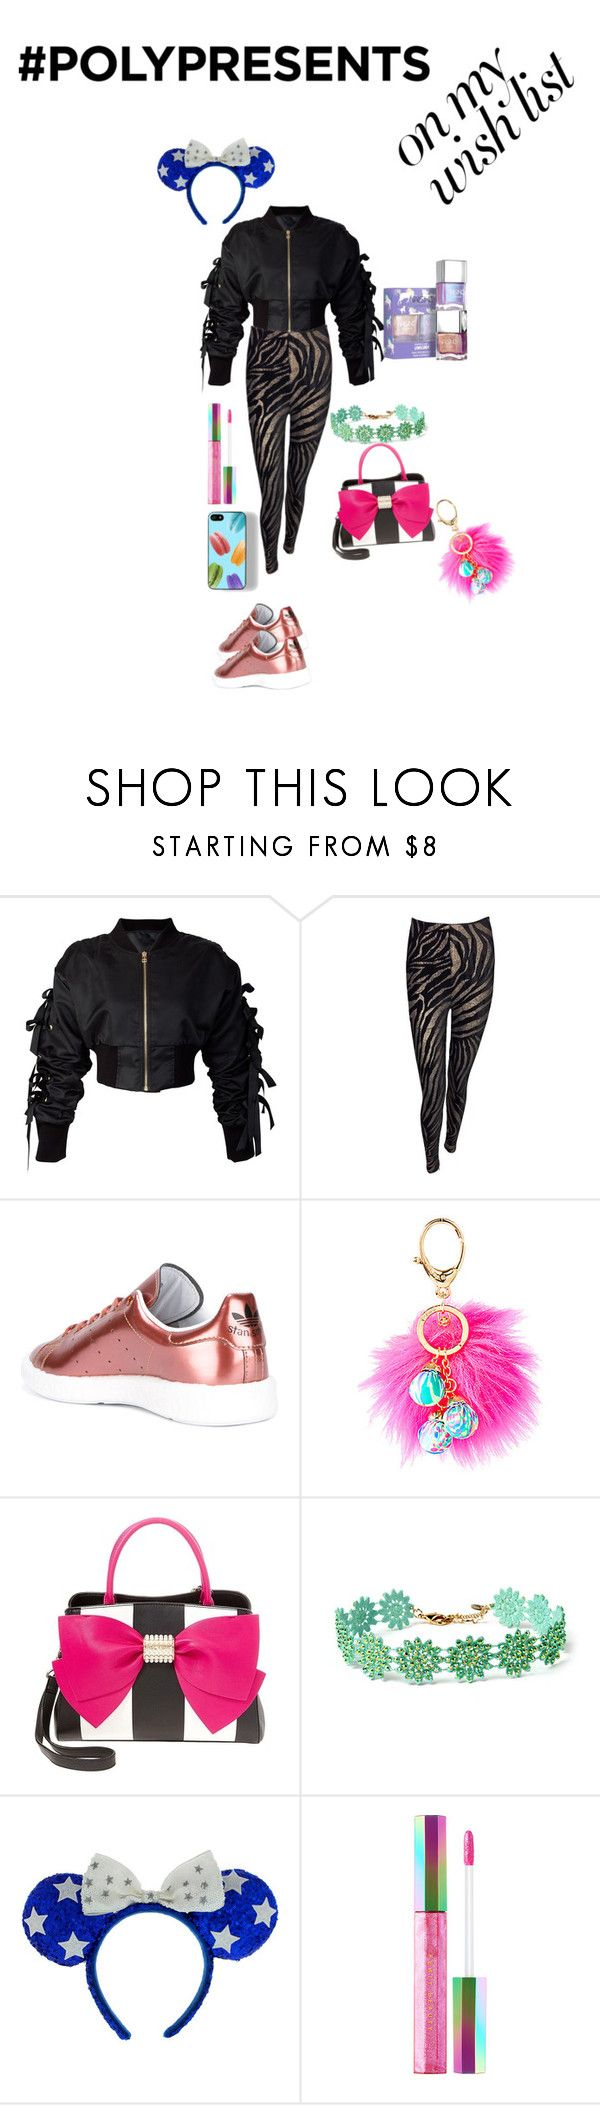 """""""#PolyPresents: Wish List"""" by tristadavis10 on Polyvore featuring storets, Versace, adidas, Lilly Pulitzer, Betsey Johnson, Zero Gravity, Amrita Singh, Puma, Sephora Collection and contestentry"""